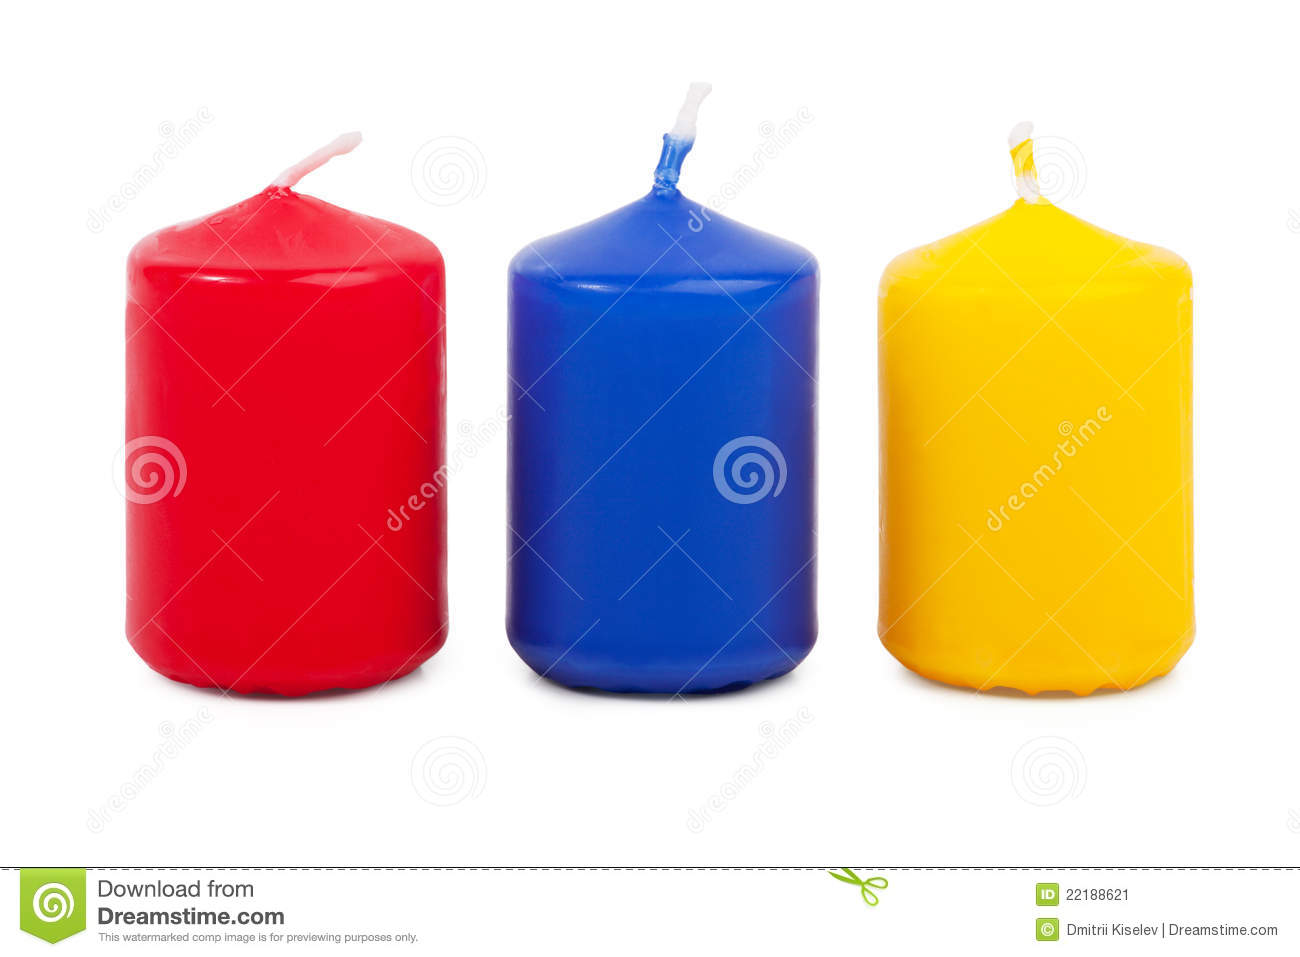 Blue Candle White Background, PC Blue Candle White Background Most ... for Blue Candle White Background  103wja